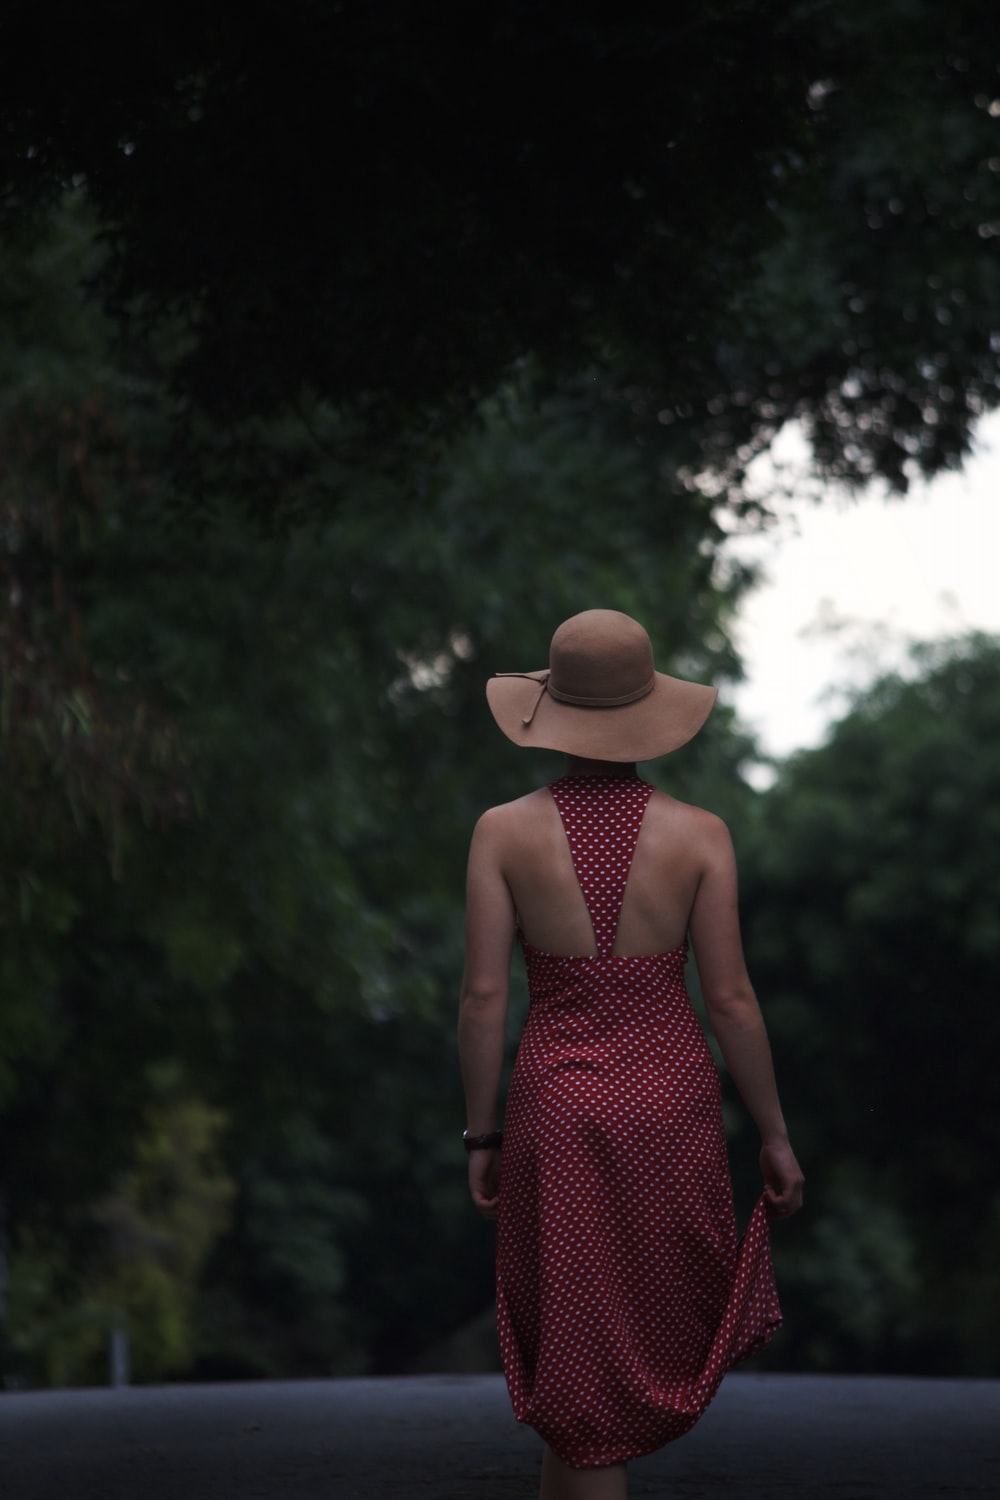 woman in black and red sleeveless dress wearing brown fedora hat standing near green trees during